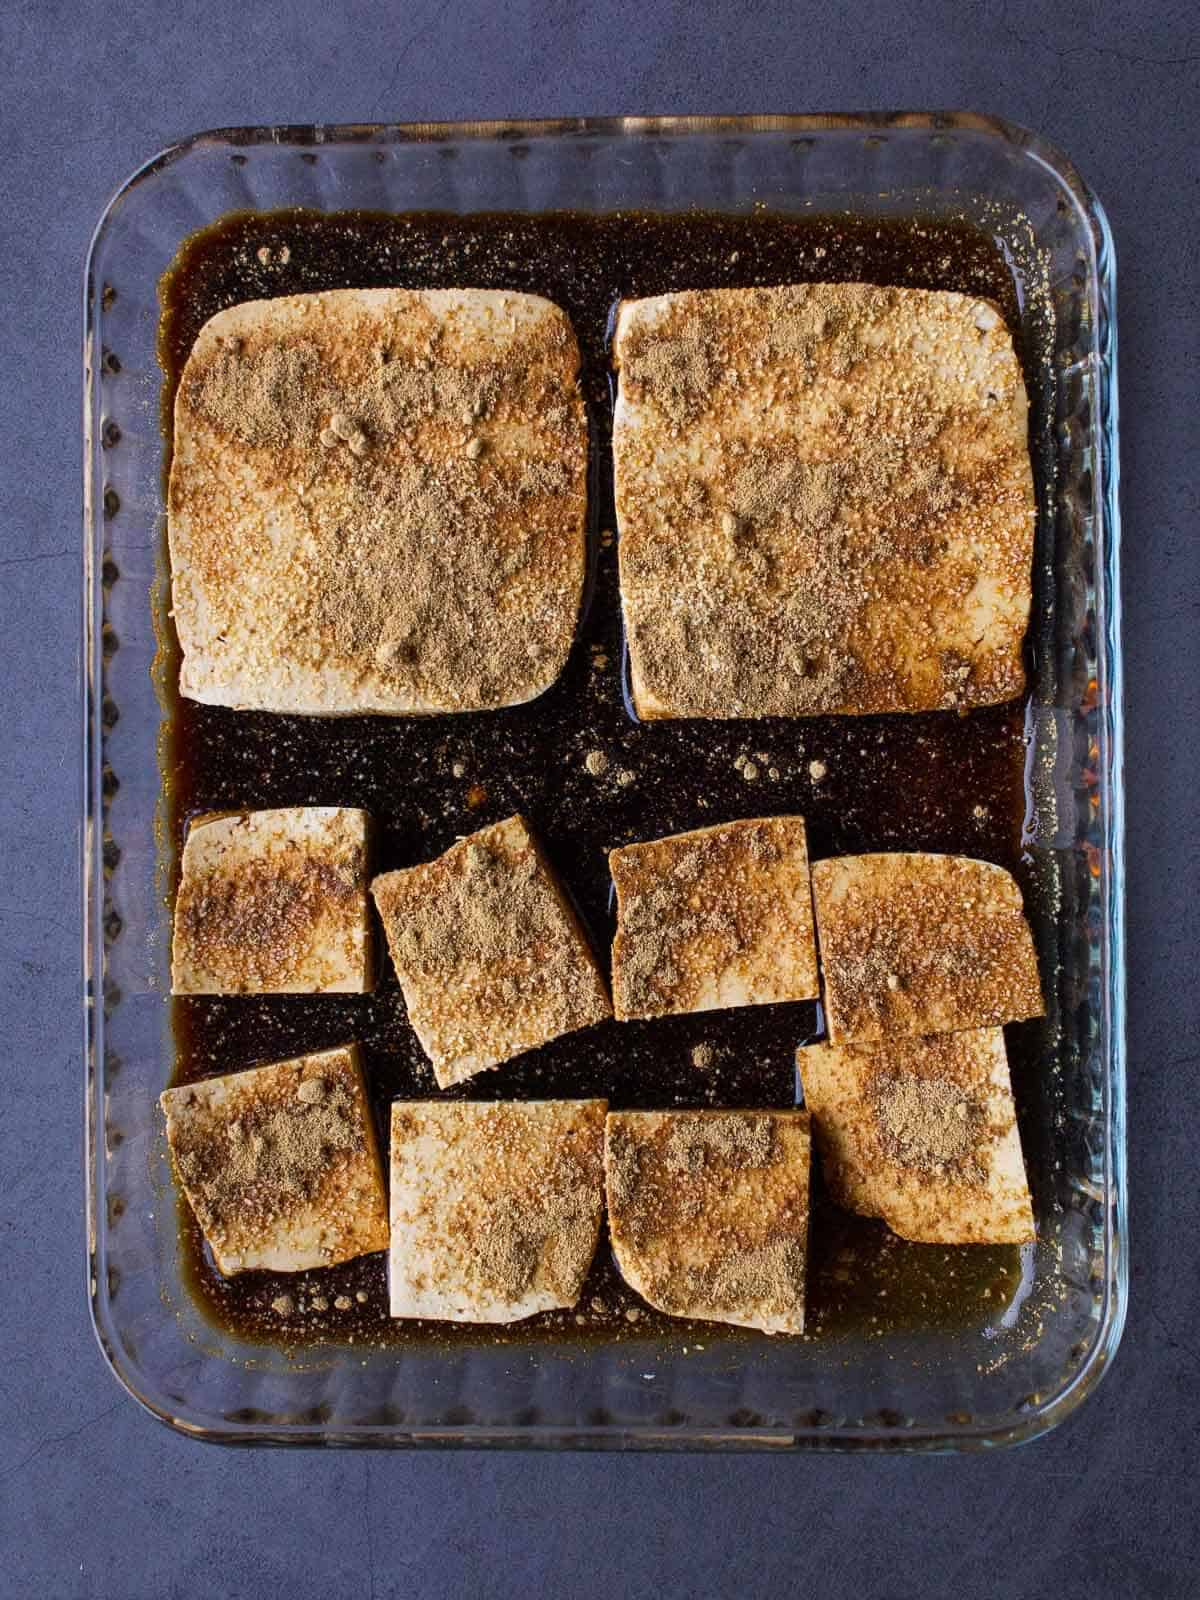 marinating extra firm tofu with garlic powder and soy sauce